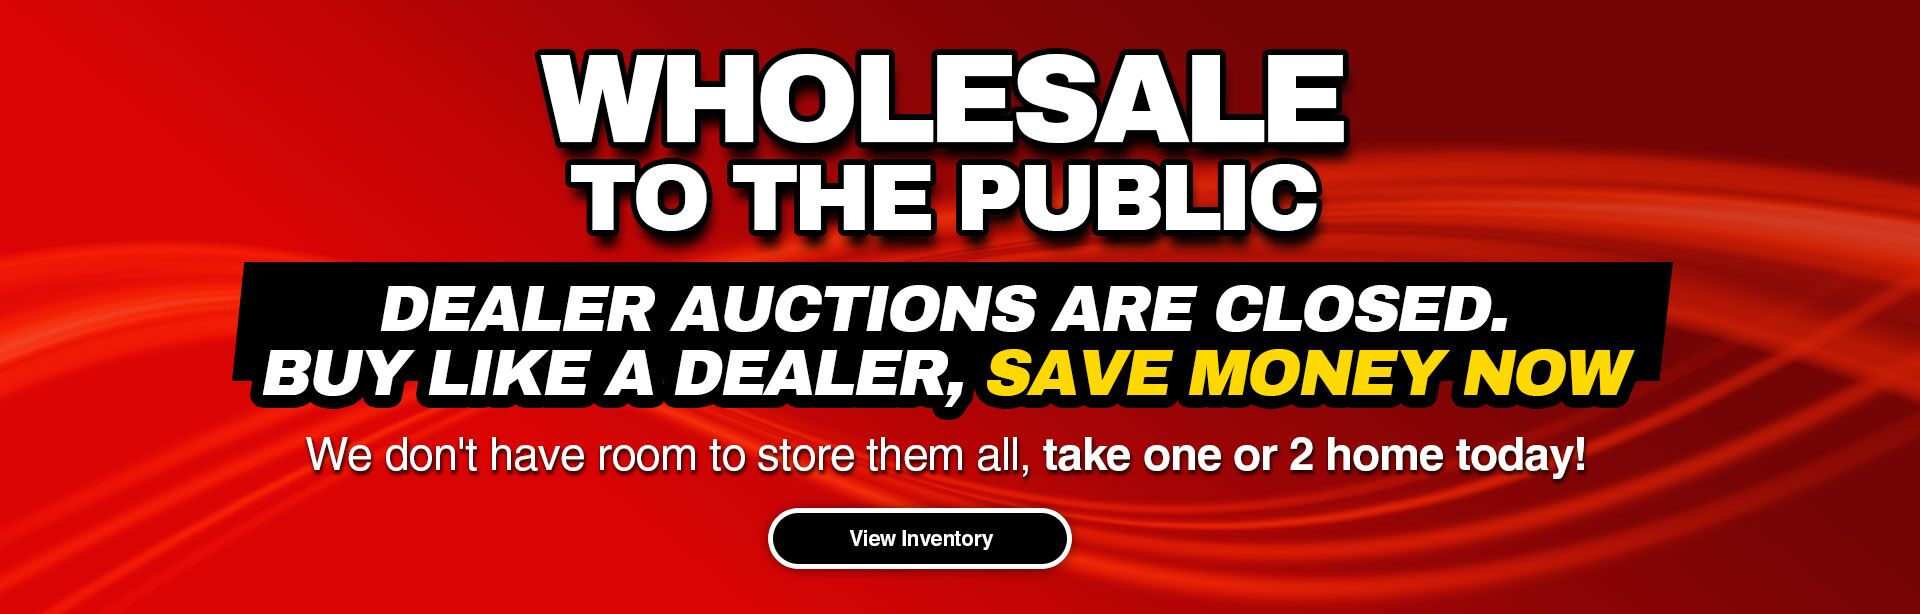 Wholesale To The Public